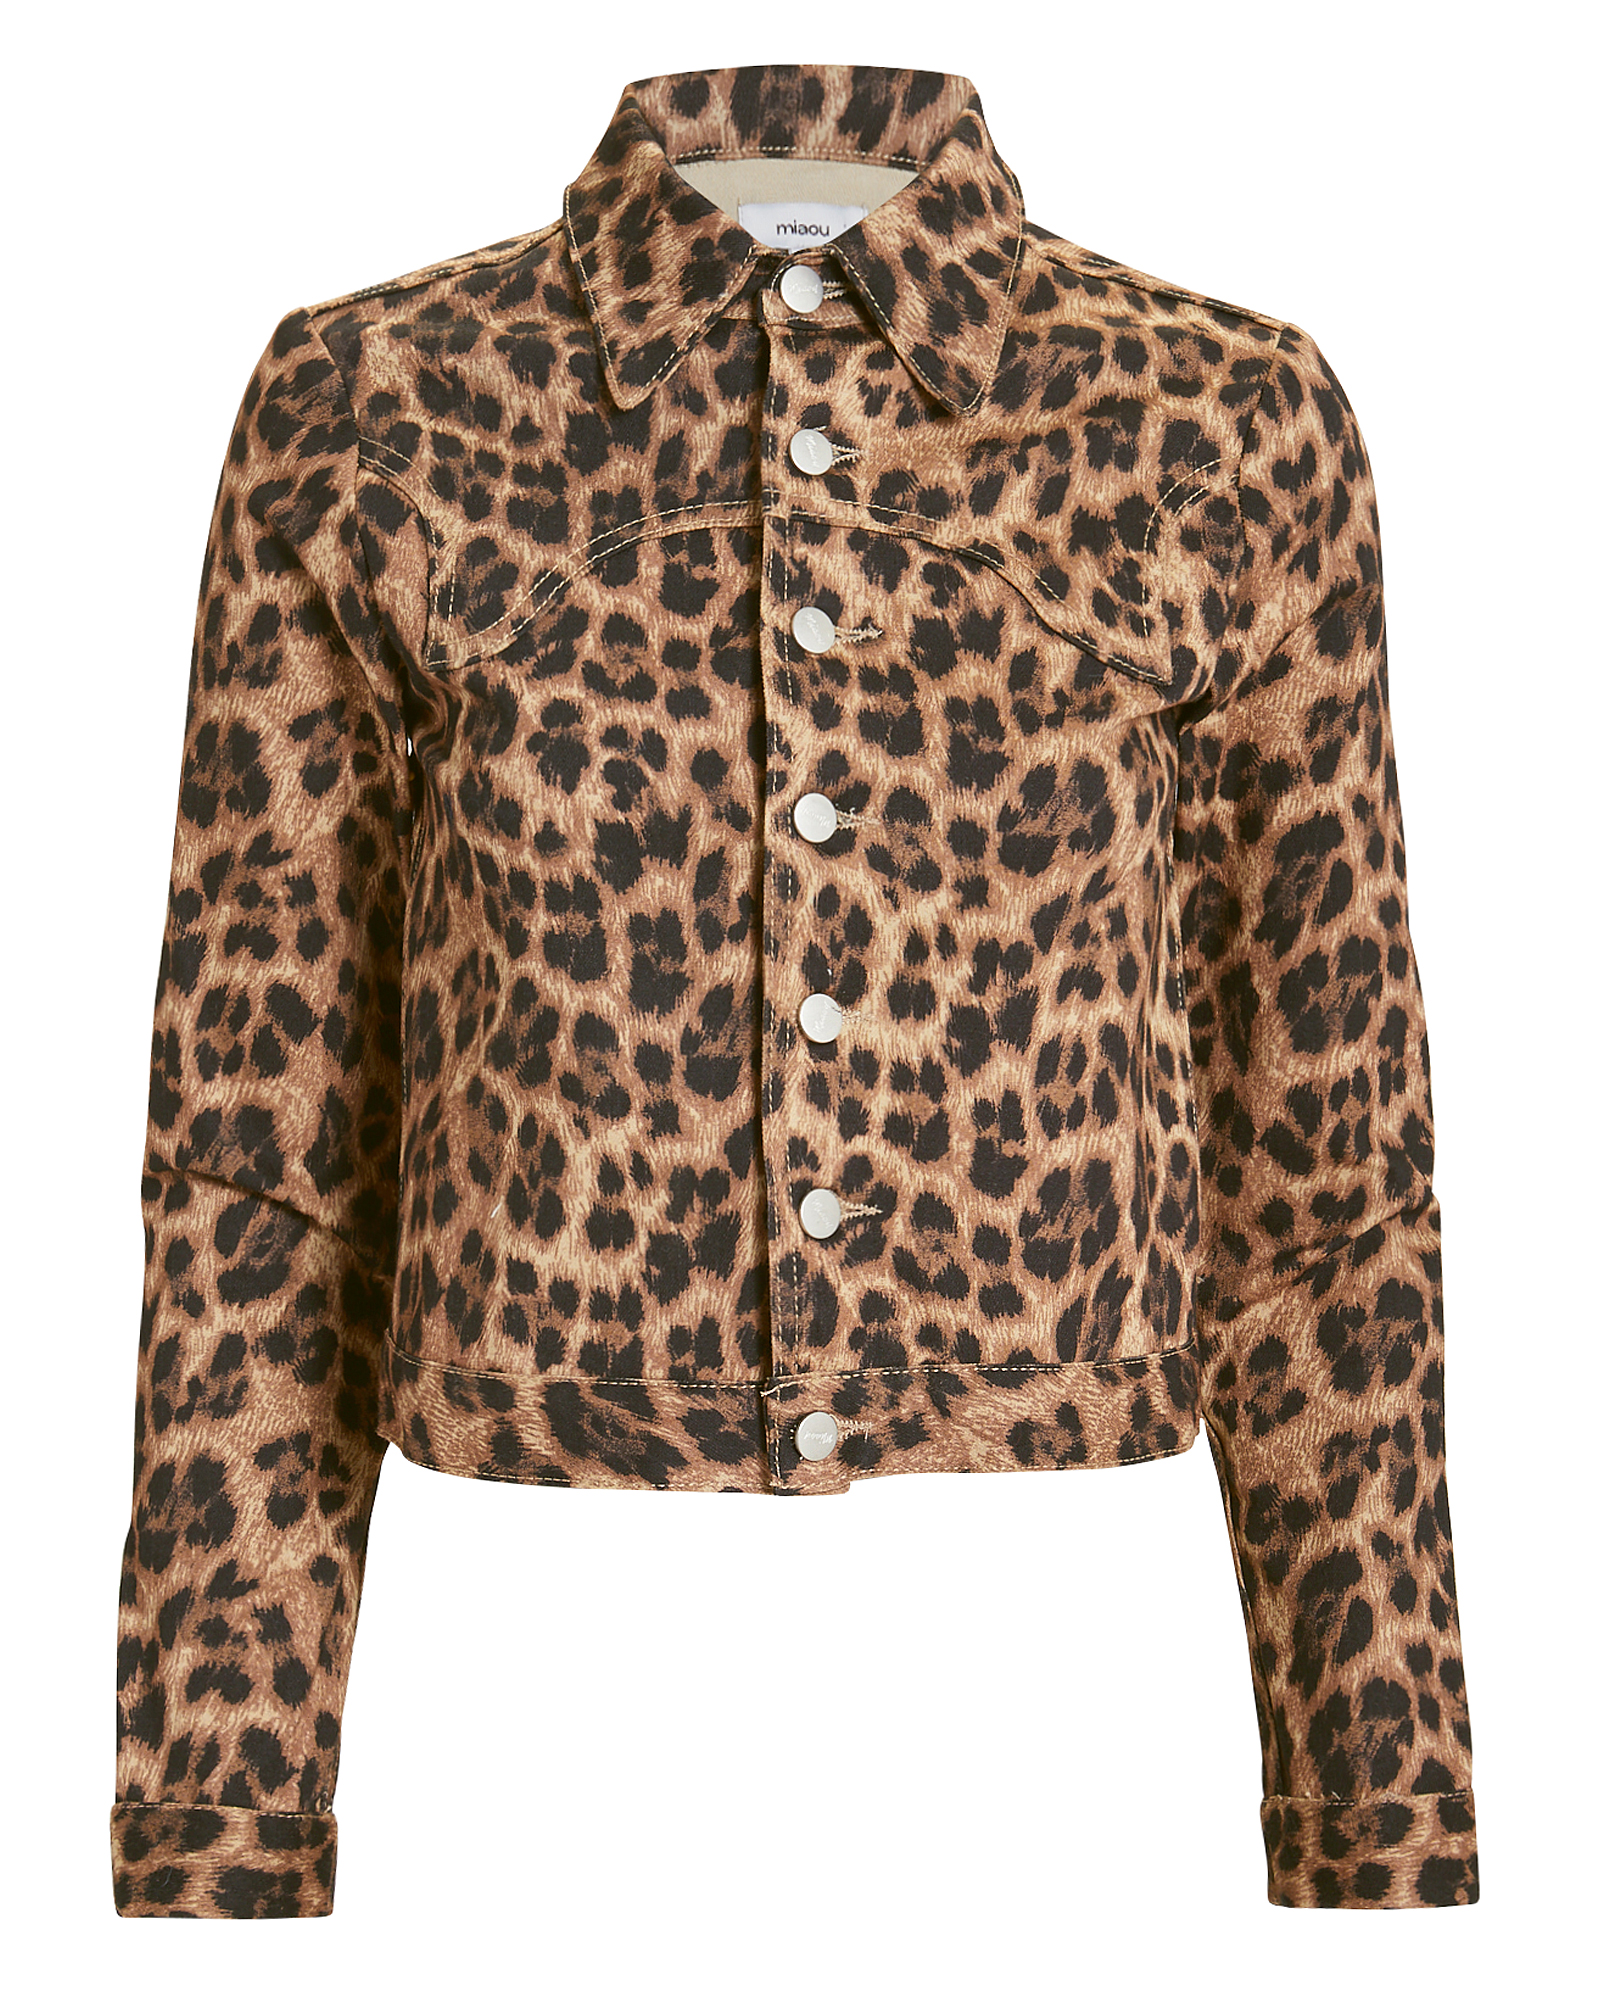 MIAOU Lex Leopard Print Cropped Cotton Blend Jacket in Brown